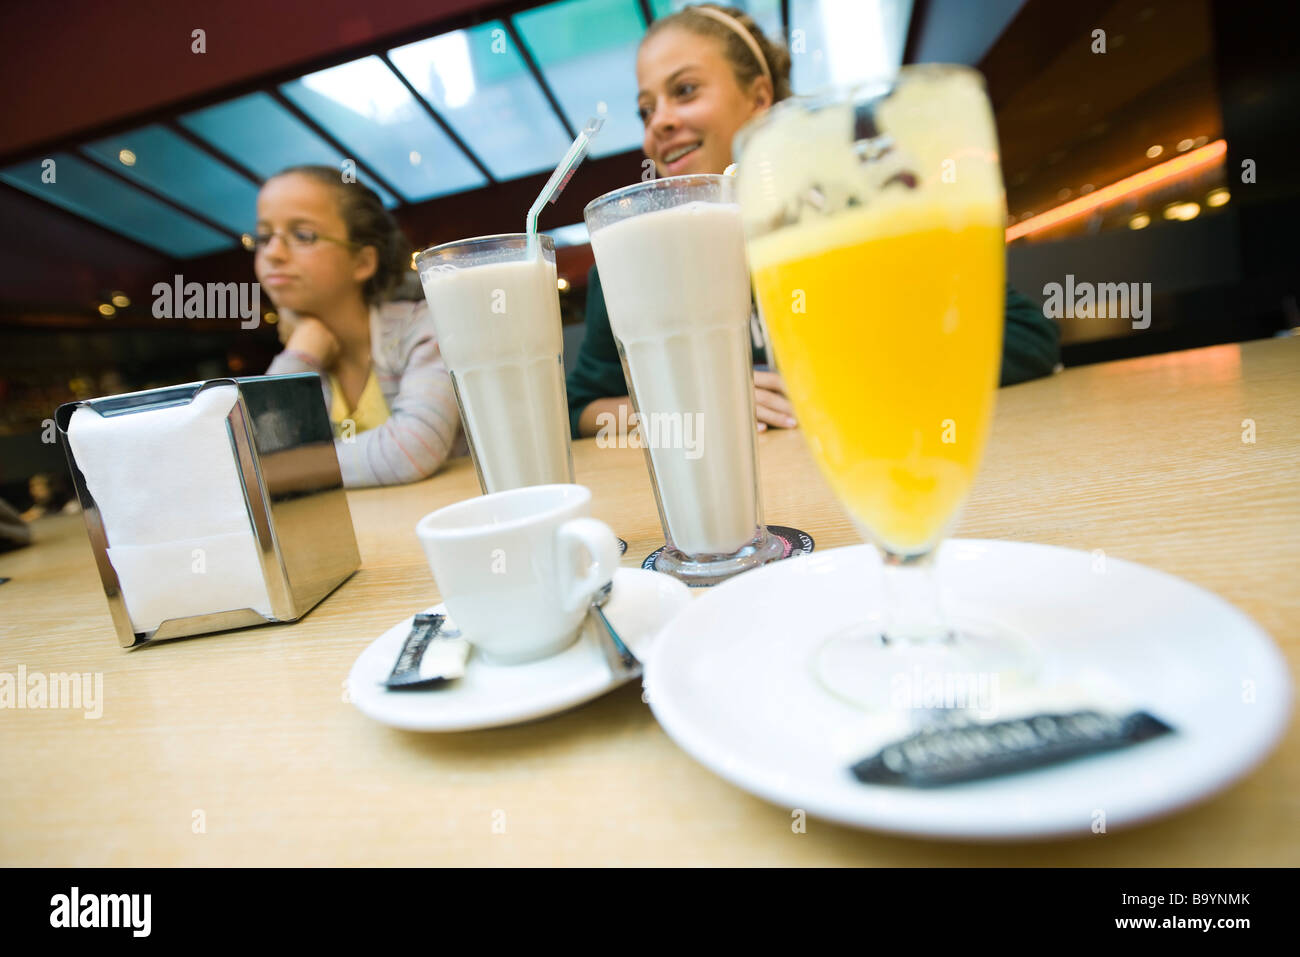 Teenage girls at cafe counter, milkshakes, glass of juice in foreground - Stock Image